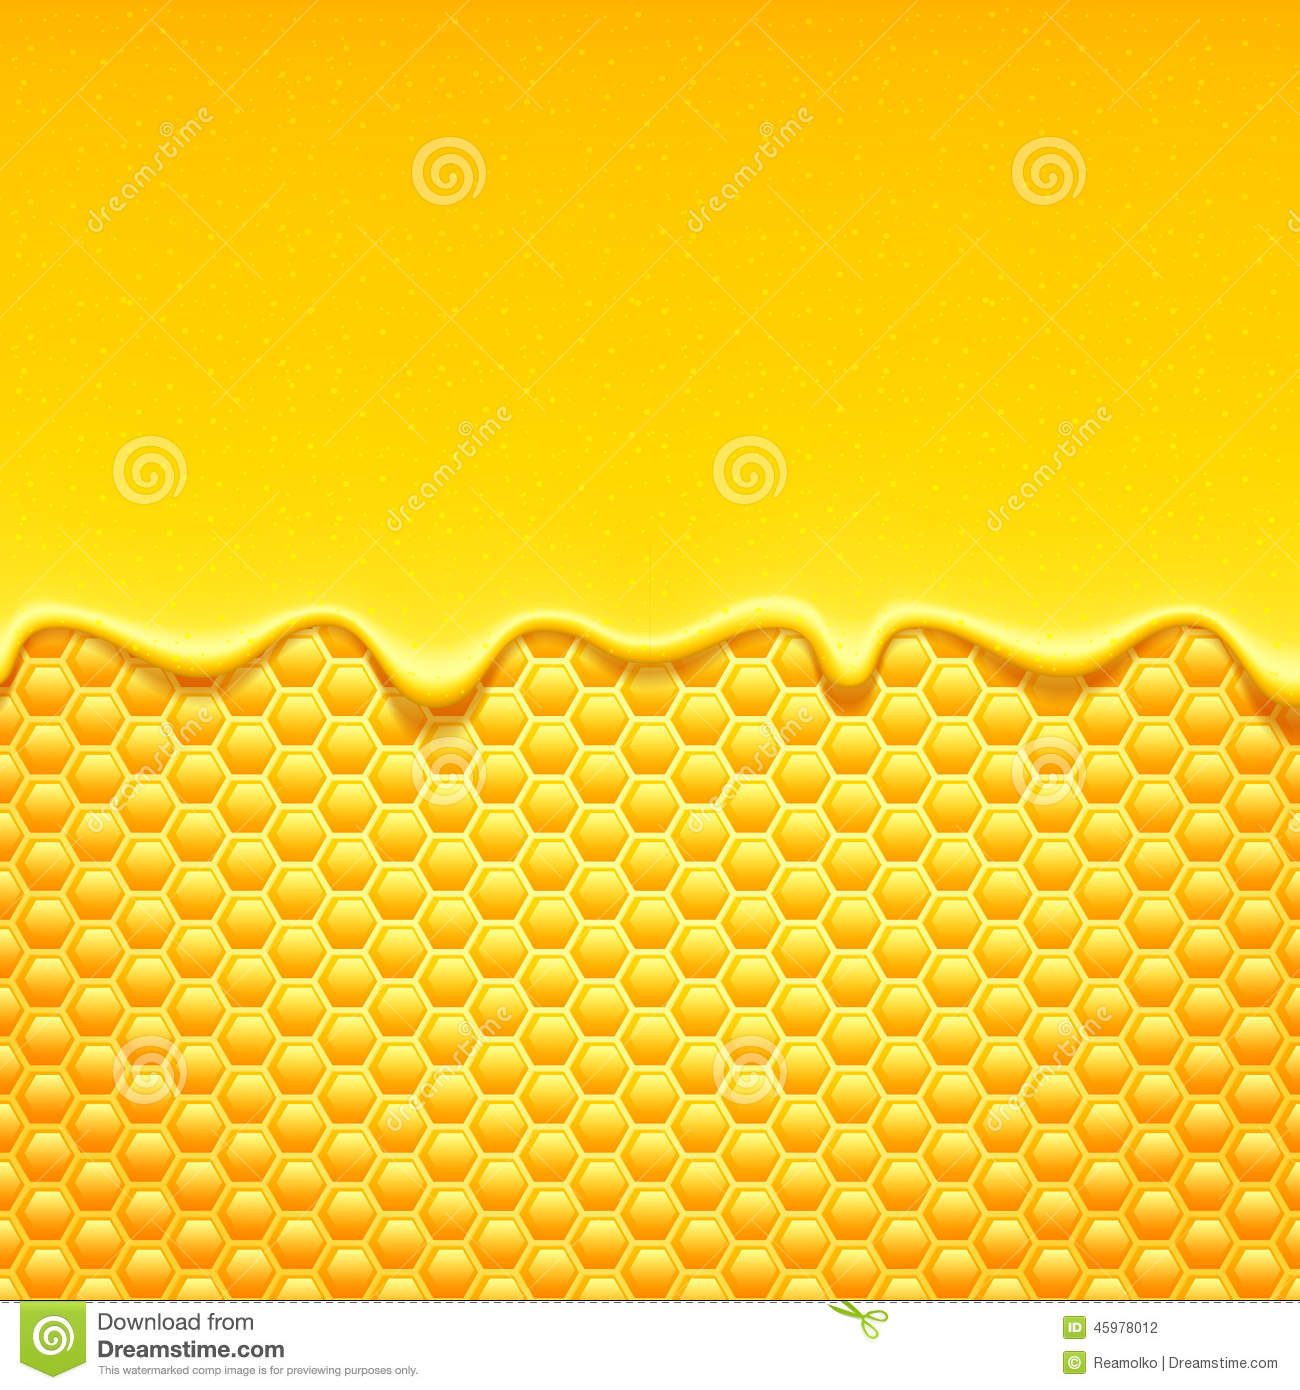 3d Liquid Abstract Wallpaper Yellow Pattern With Honeycomb And Honey Drips Stock